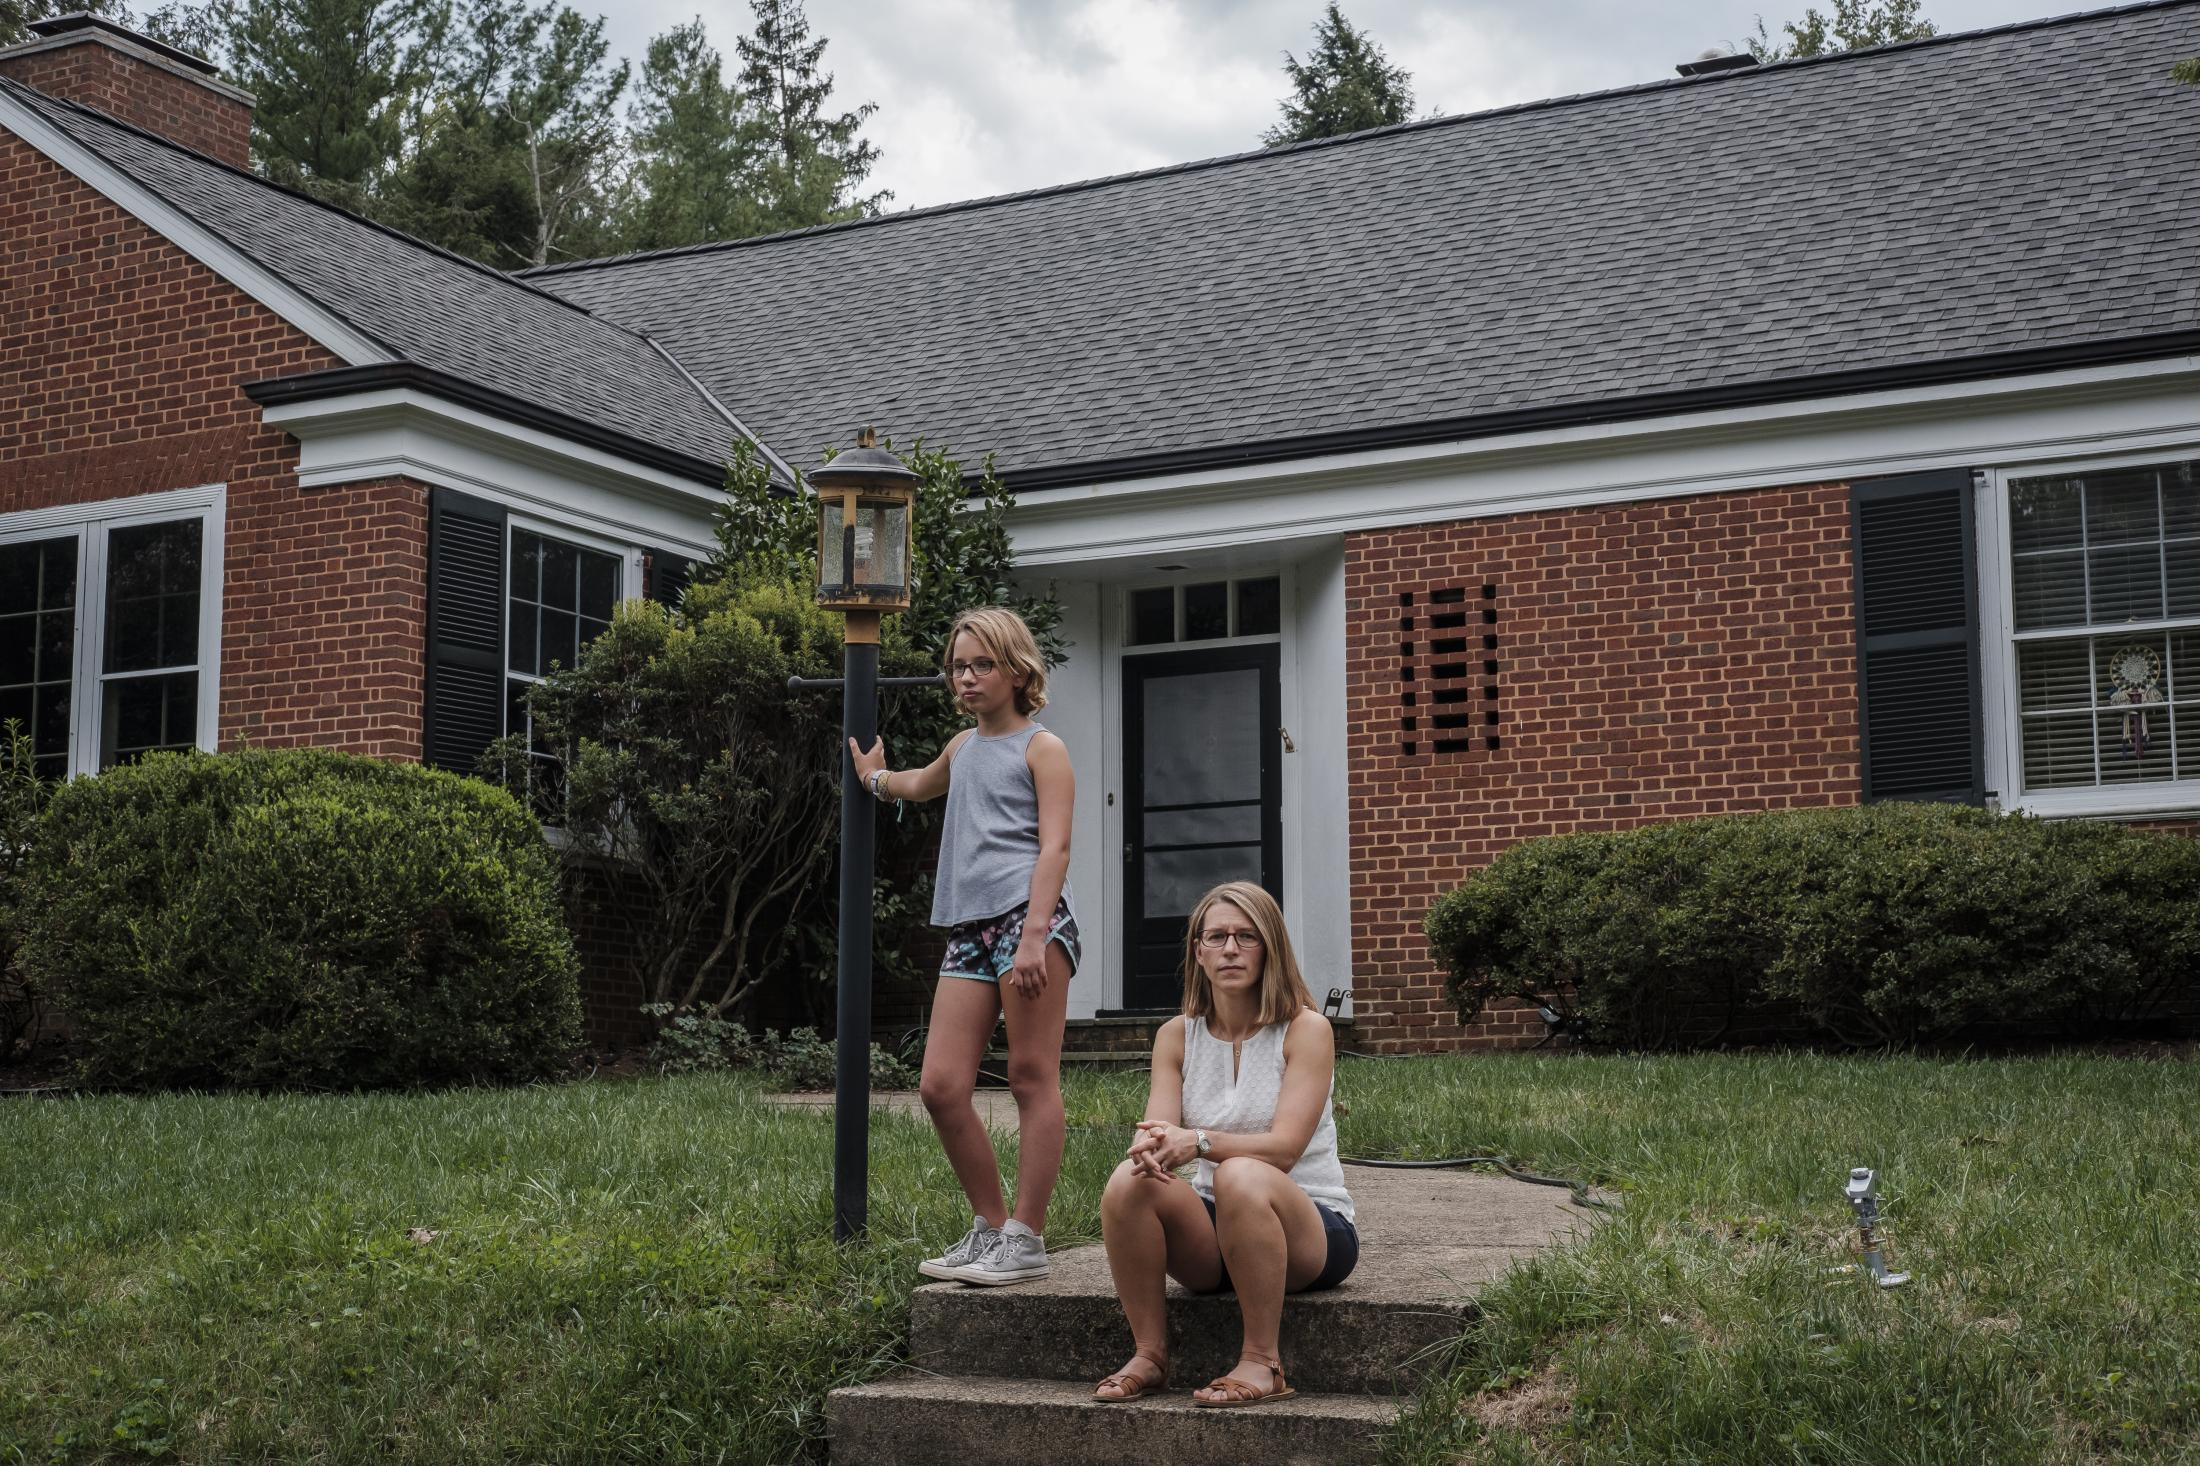 Jeri Seidman and her daughter Hannah pose for a portrait at their house in Charlottesville, Virginia, U.S., on Monday Sept. 23, 2019. Hannah is a patient in a genetic risk study about type 1 diabetes at University of Virginia. Photographer: Carlos Bernate/ NPR